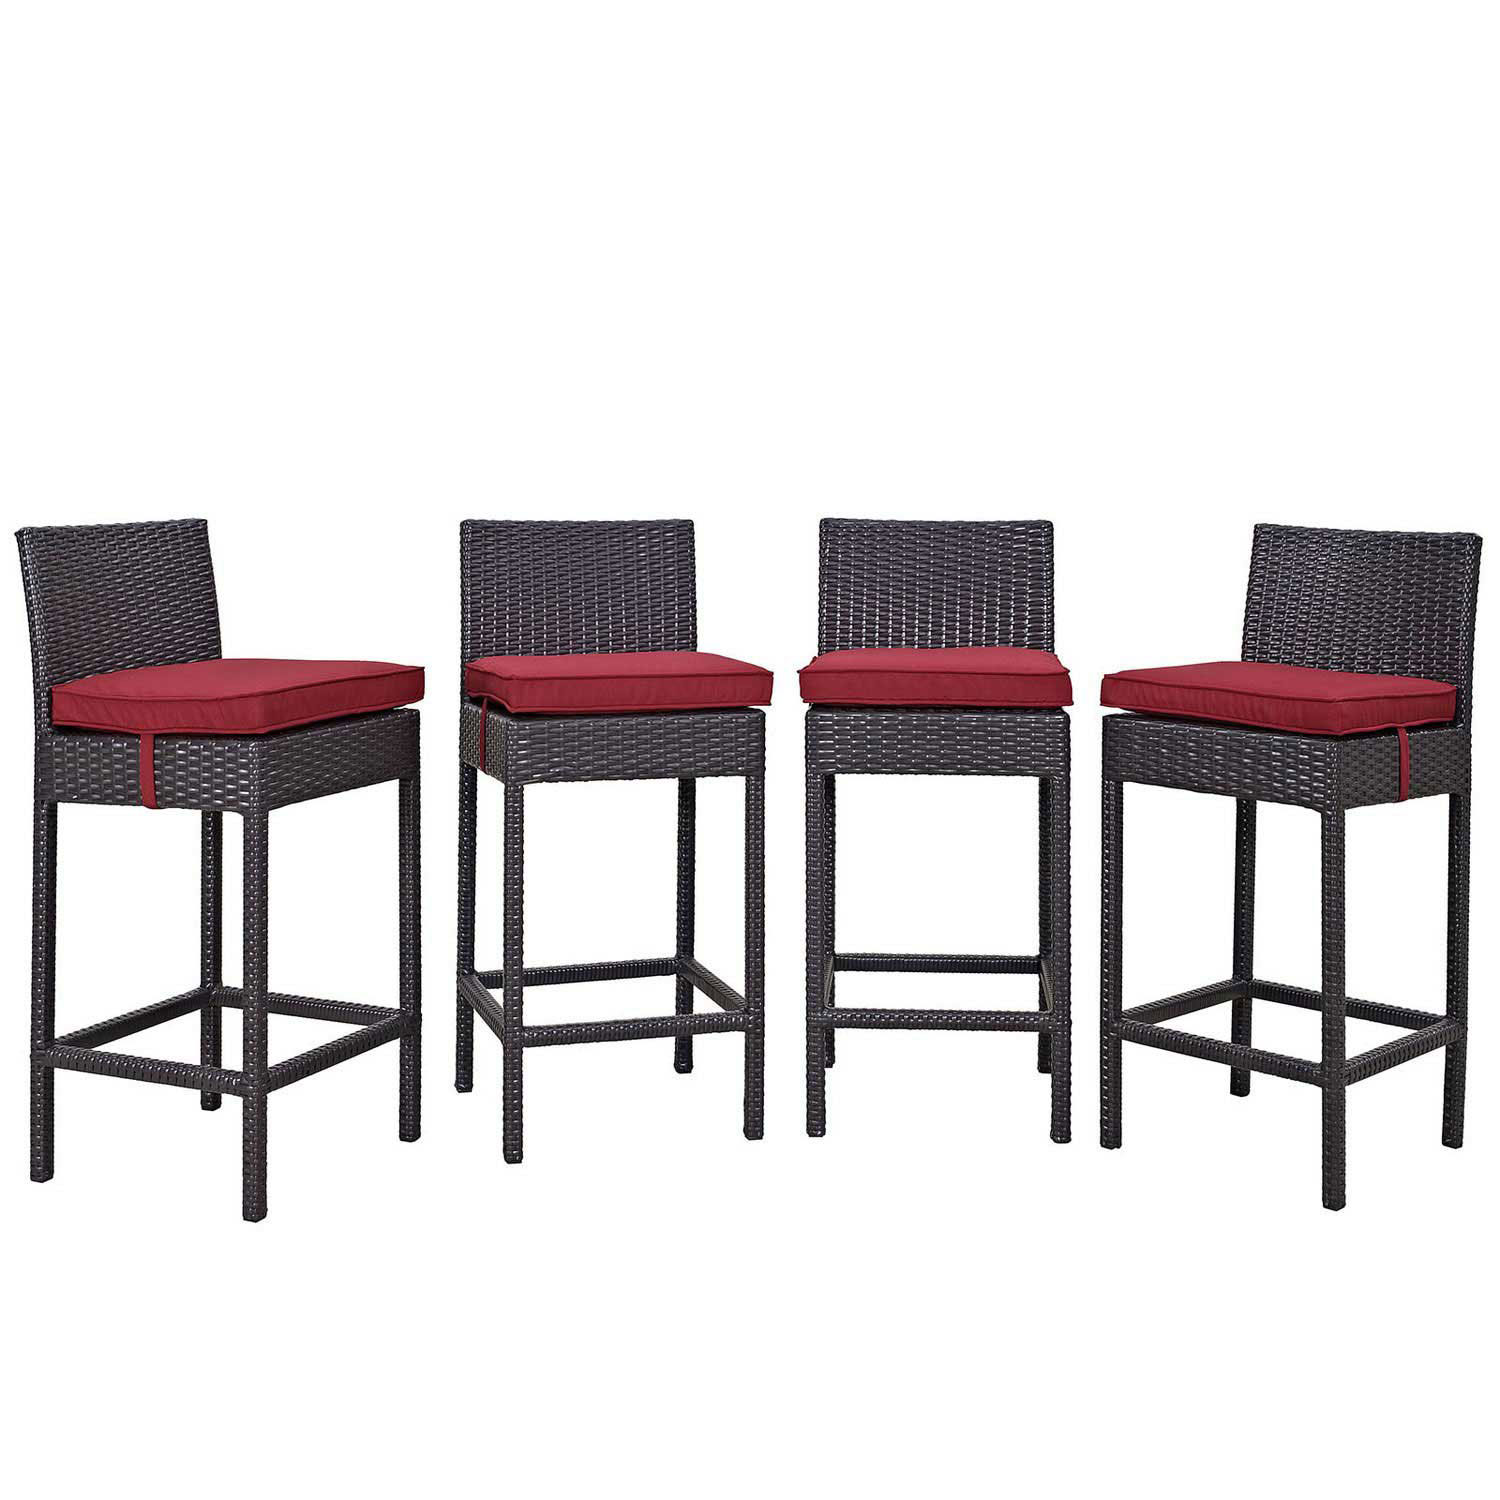 Modway Convene 4 Piece Outdoor Patio Pub Set - Espresso red